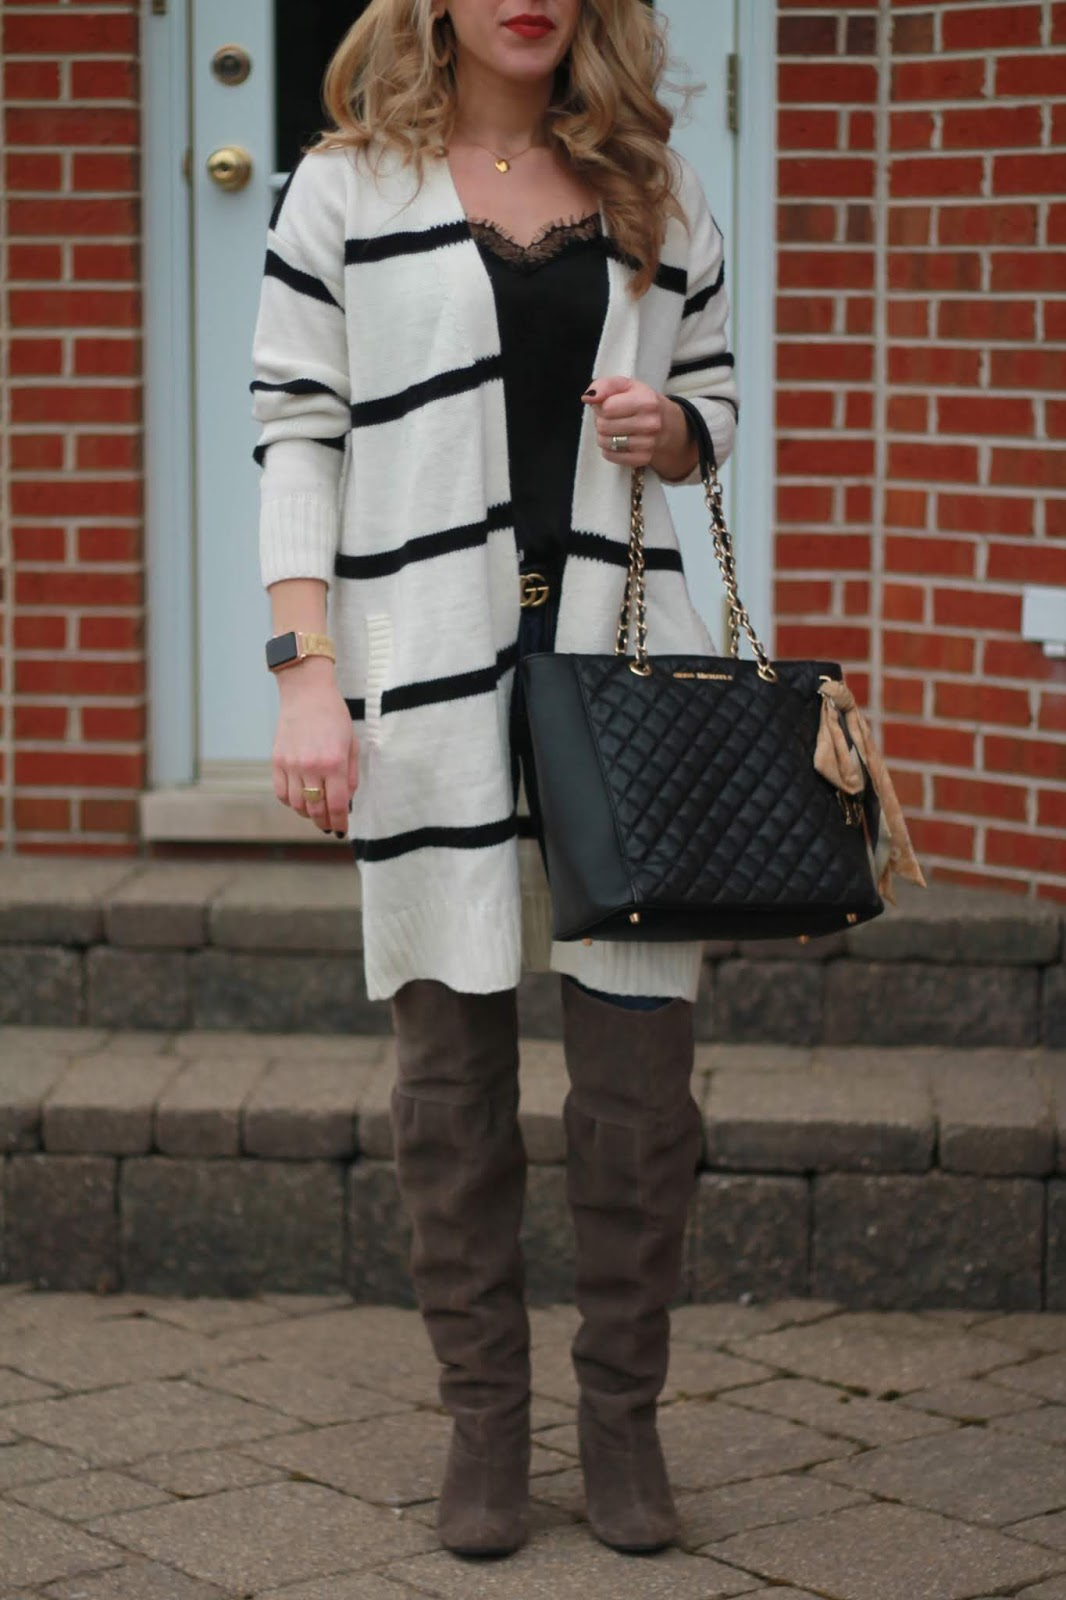 striped cardigan, black lace cami, black leather quilted tote, grey OTK boots